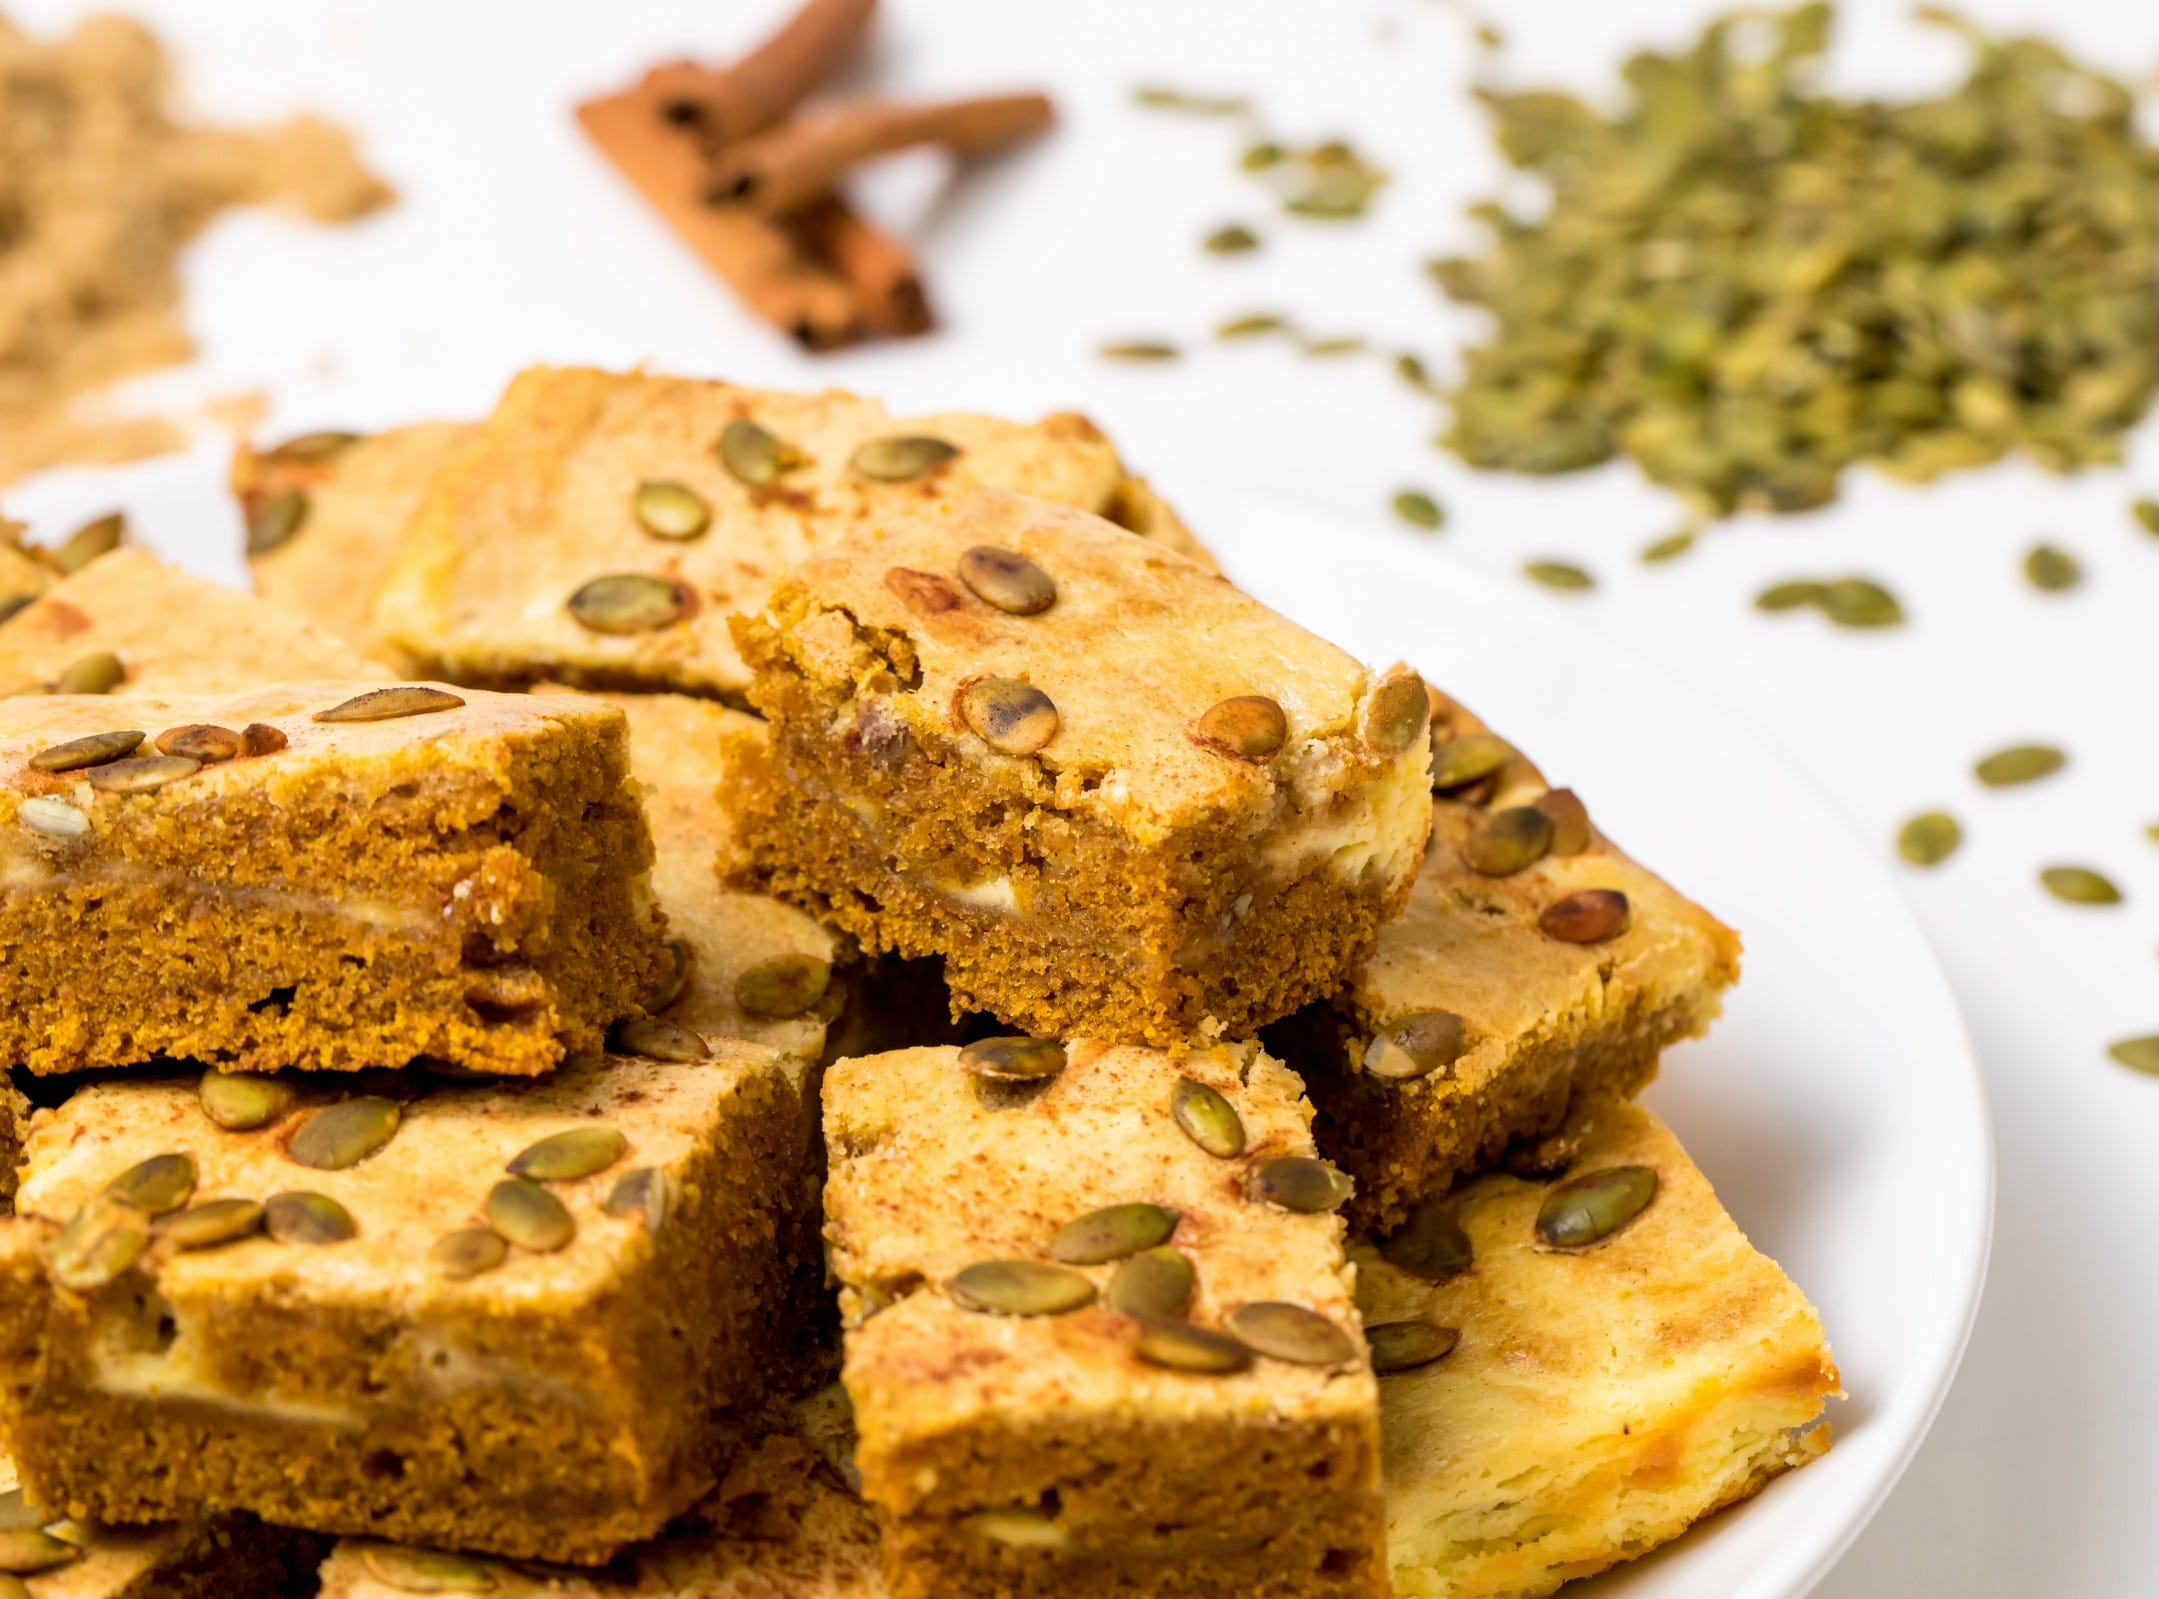 Looking for an outrageously rich pumpkin dessert to celebrate fall and all its warm, cozy flavors? Make these pumpkin cream cheese swirl bars, inspired by Sally's Baking Addiction, and you'll find yourself throwing a weekly harvest party just to eat dessert.